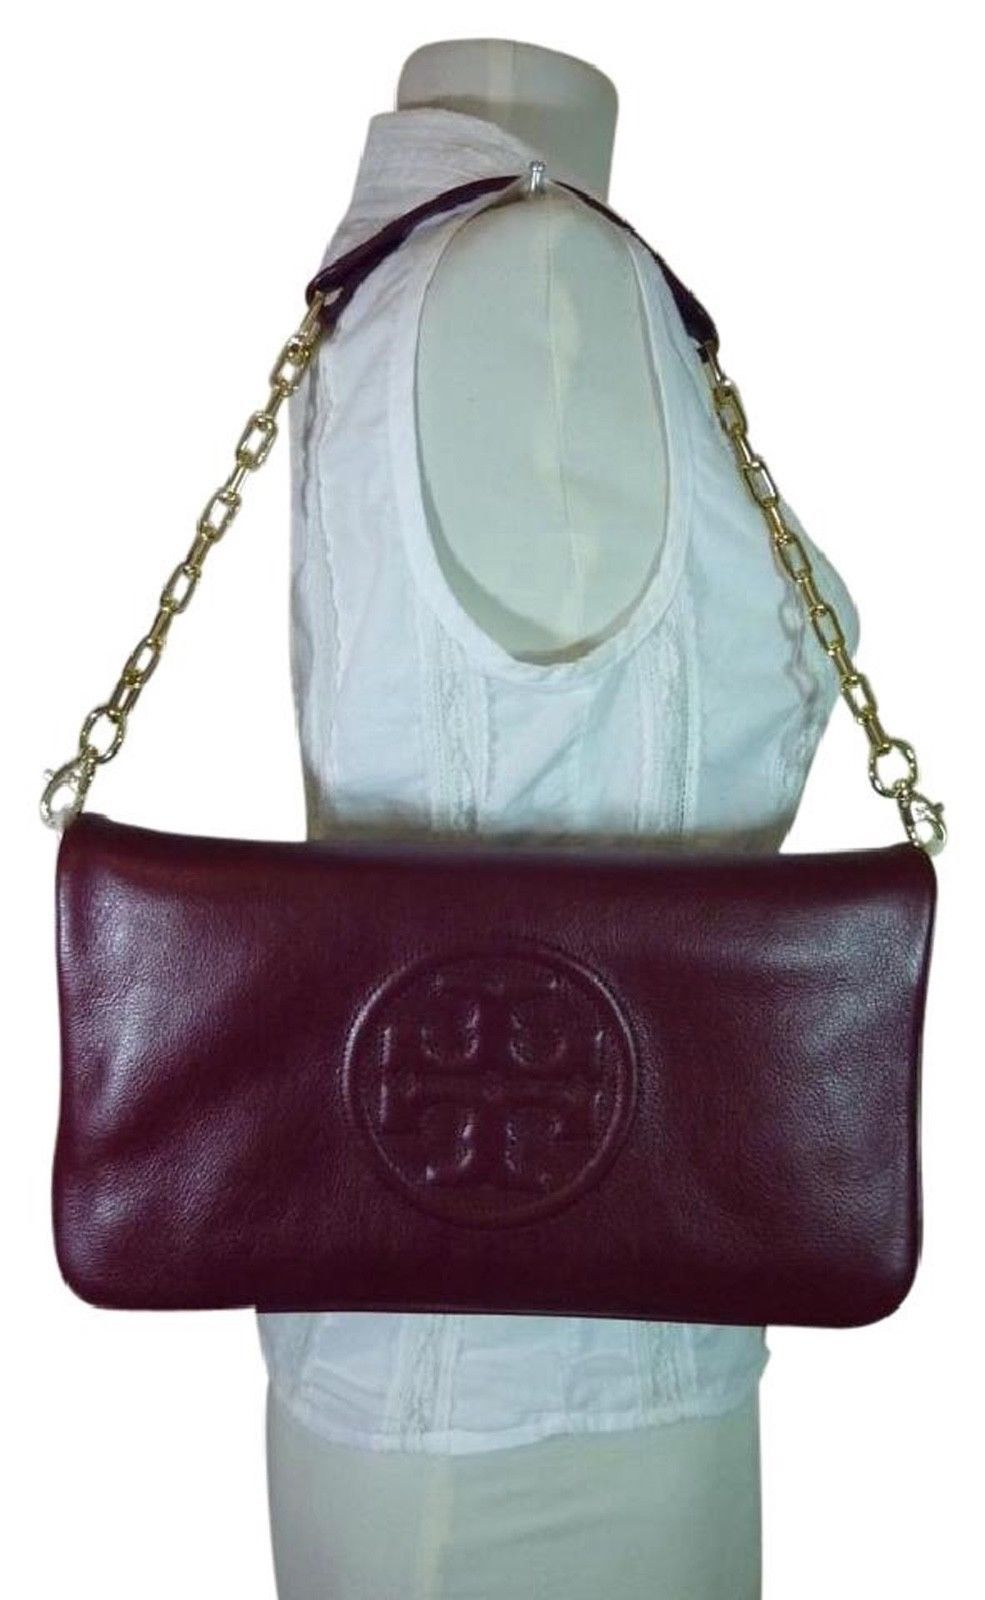 7a531e35d14 NWT Tory Burch Red Agate Leather BOMBE Reva Shoulder Bag Clutch -  324.73